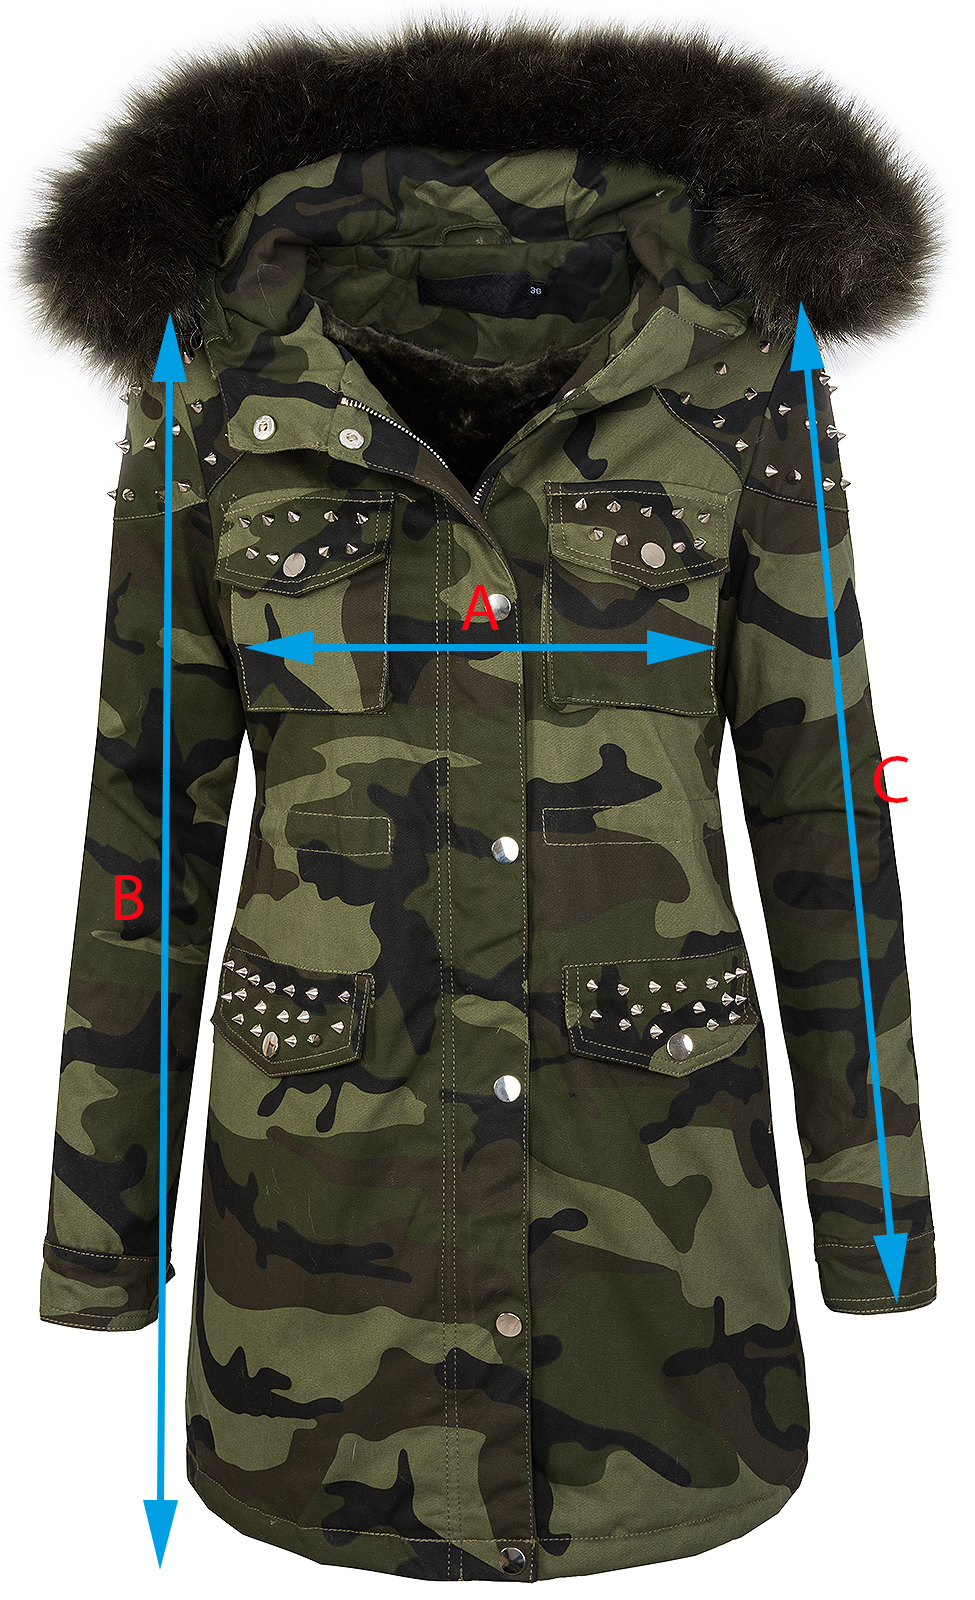 damen winter parka jacke army look damenjacke kunstfell kapuze mit nieten d 231 ebay. Black Bedroom Furniture Sets. Home Design Ideas